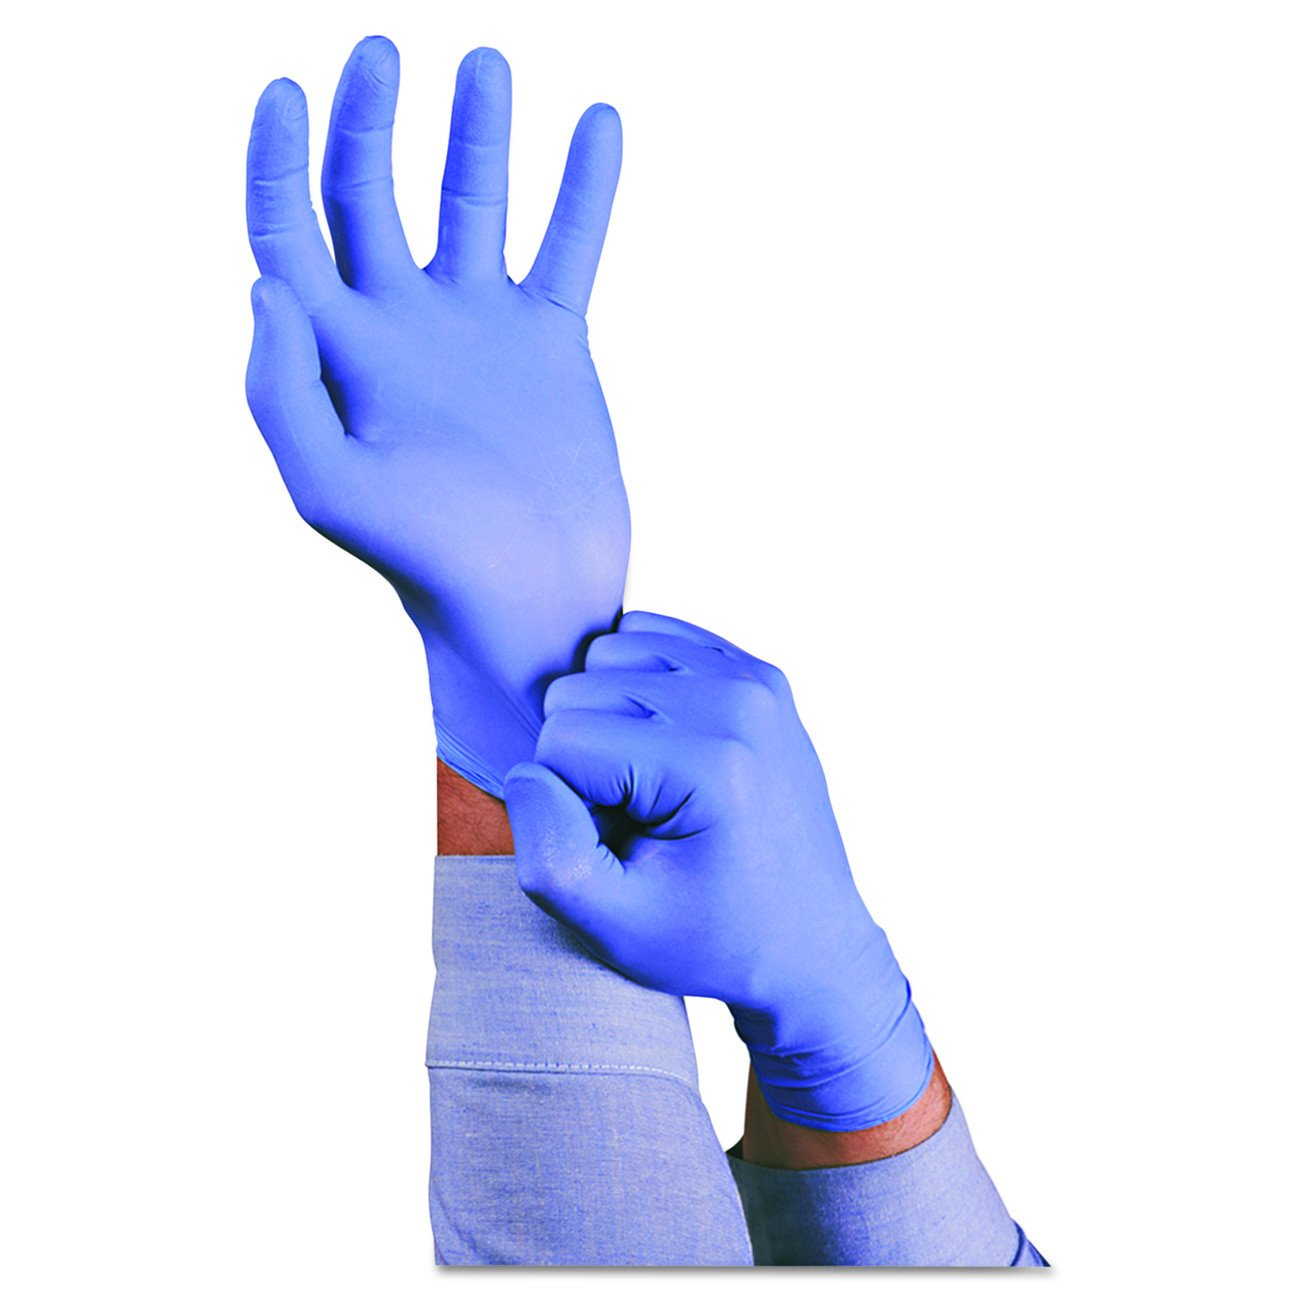 Ansell Touch n Tuff 92-675 Disposable Nitrile Gloves Chemical Protection, Latex-Free, Powder-Free Glove for Food Preparation, Mechanics or DIY Applications, Blue, Size Medium, Case of 100 Units